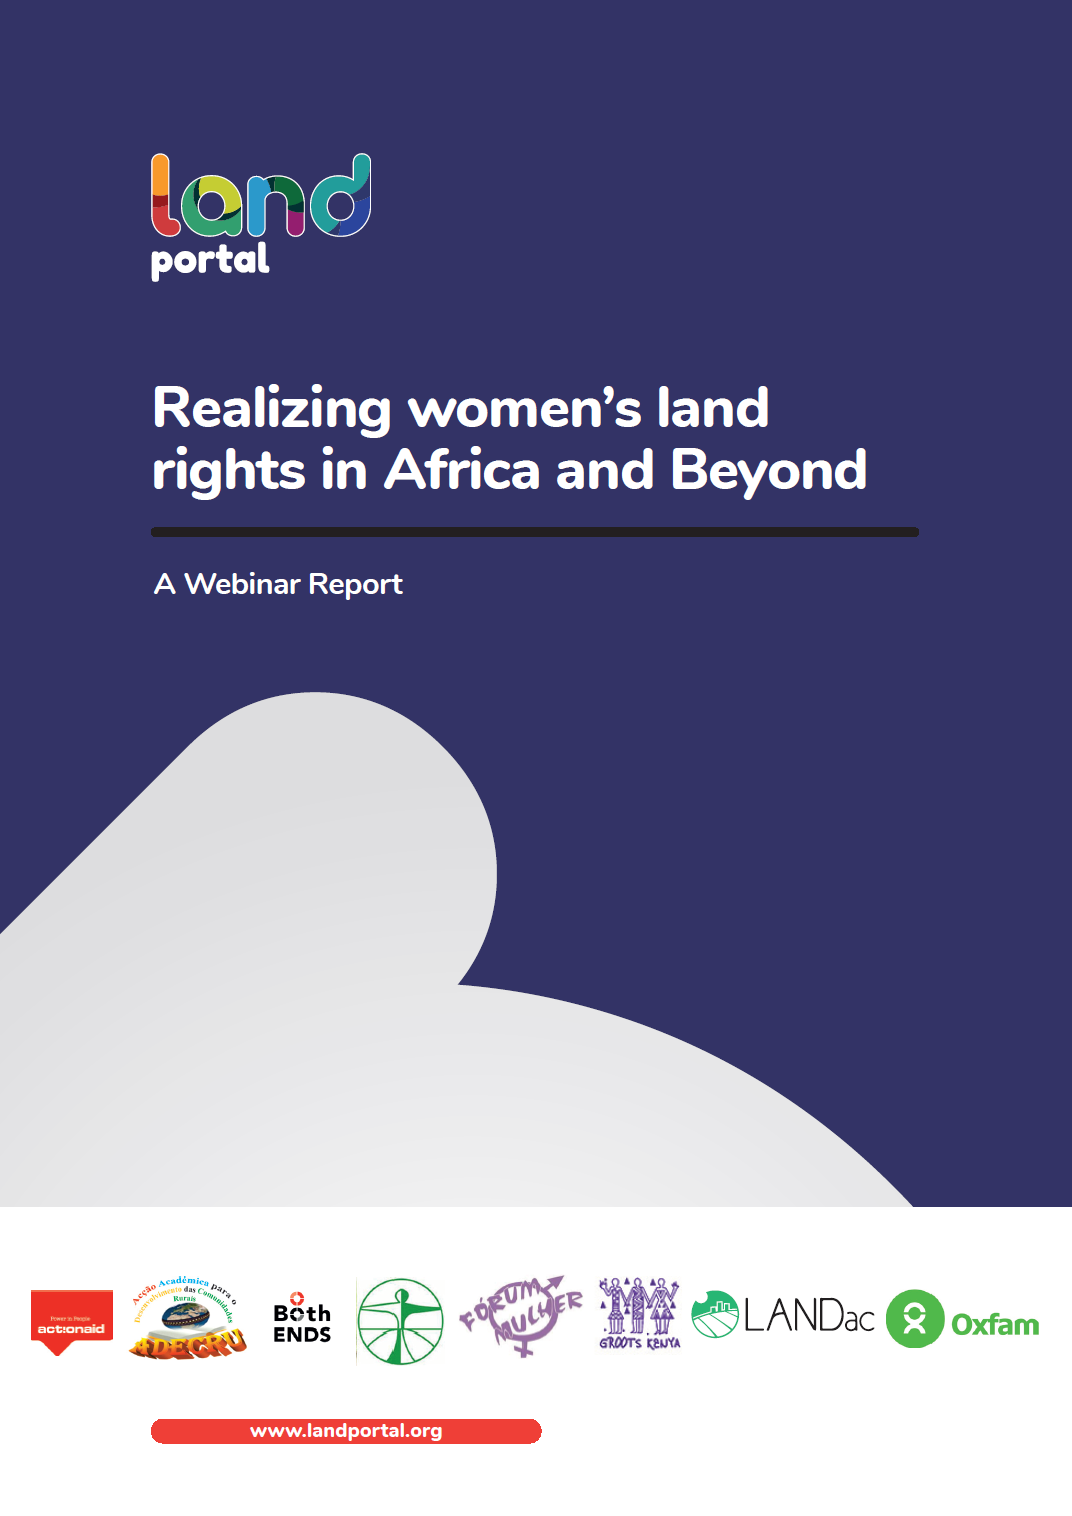 Realizing women's land rights in Africa and Beyond